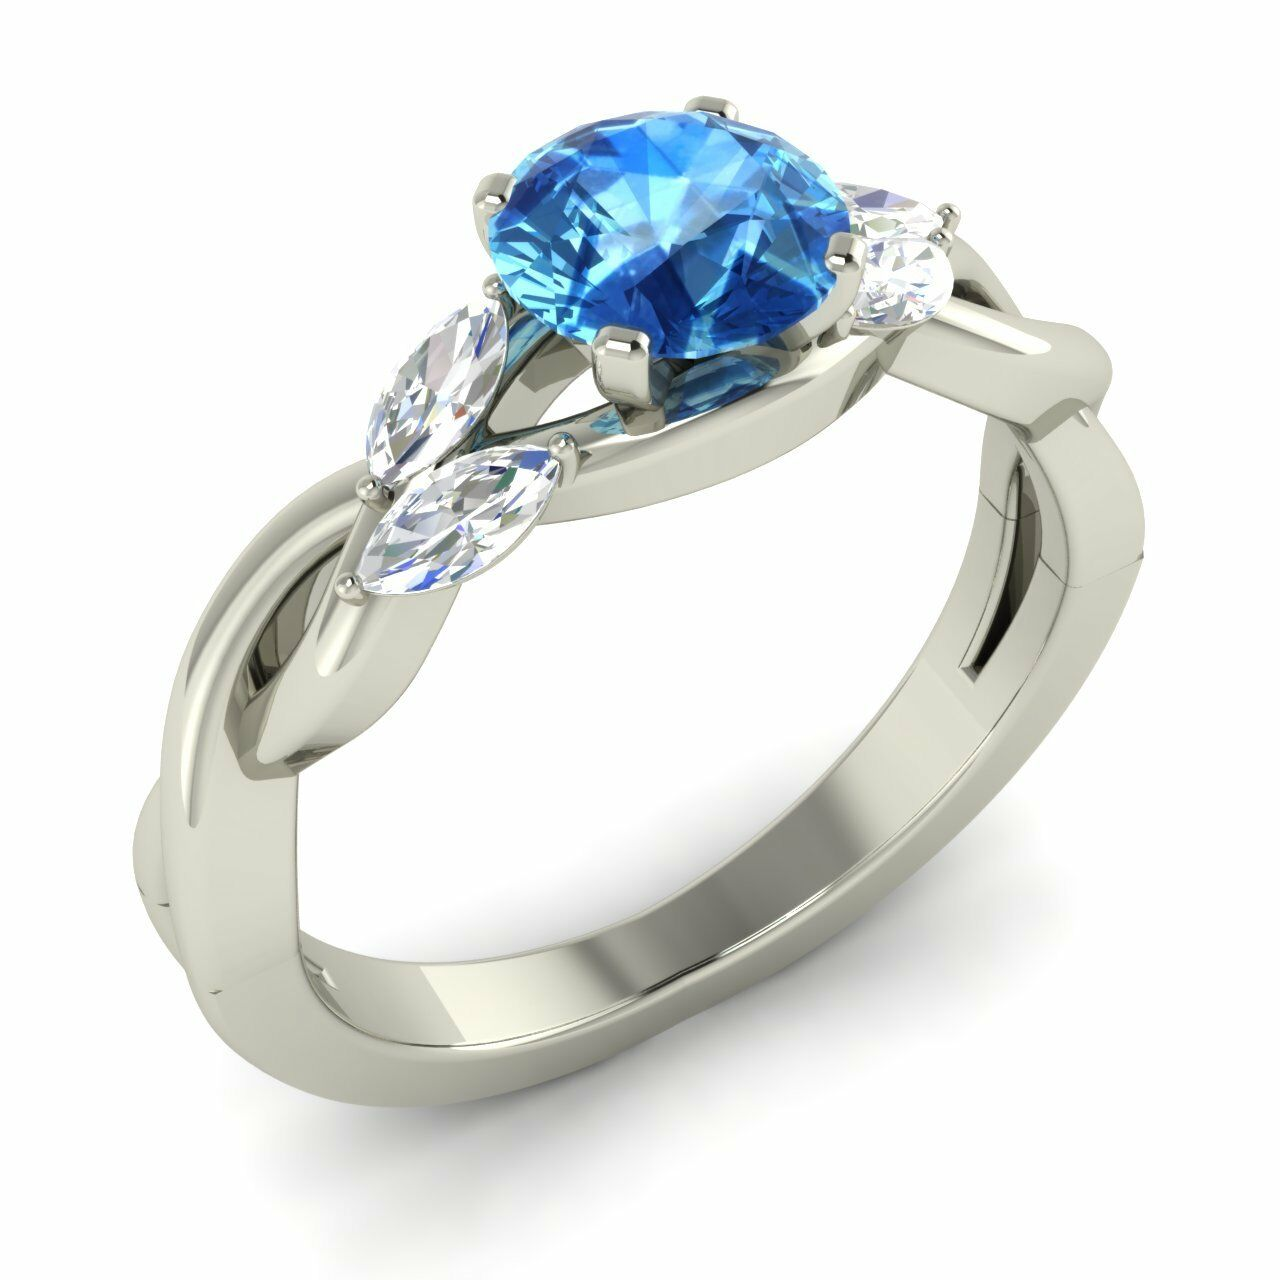 Natural bluee Topaz Engagement Ring 14k White gold VS Diamonds Certified 1.18 TCW